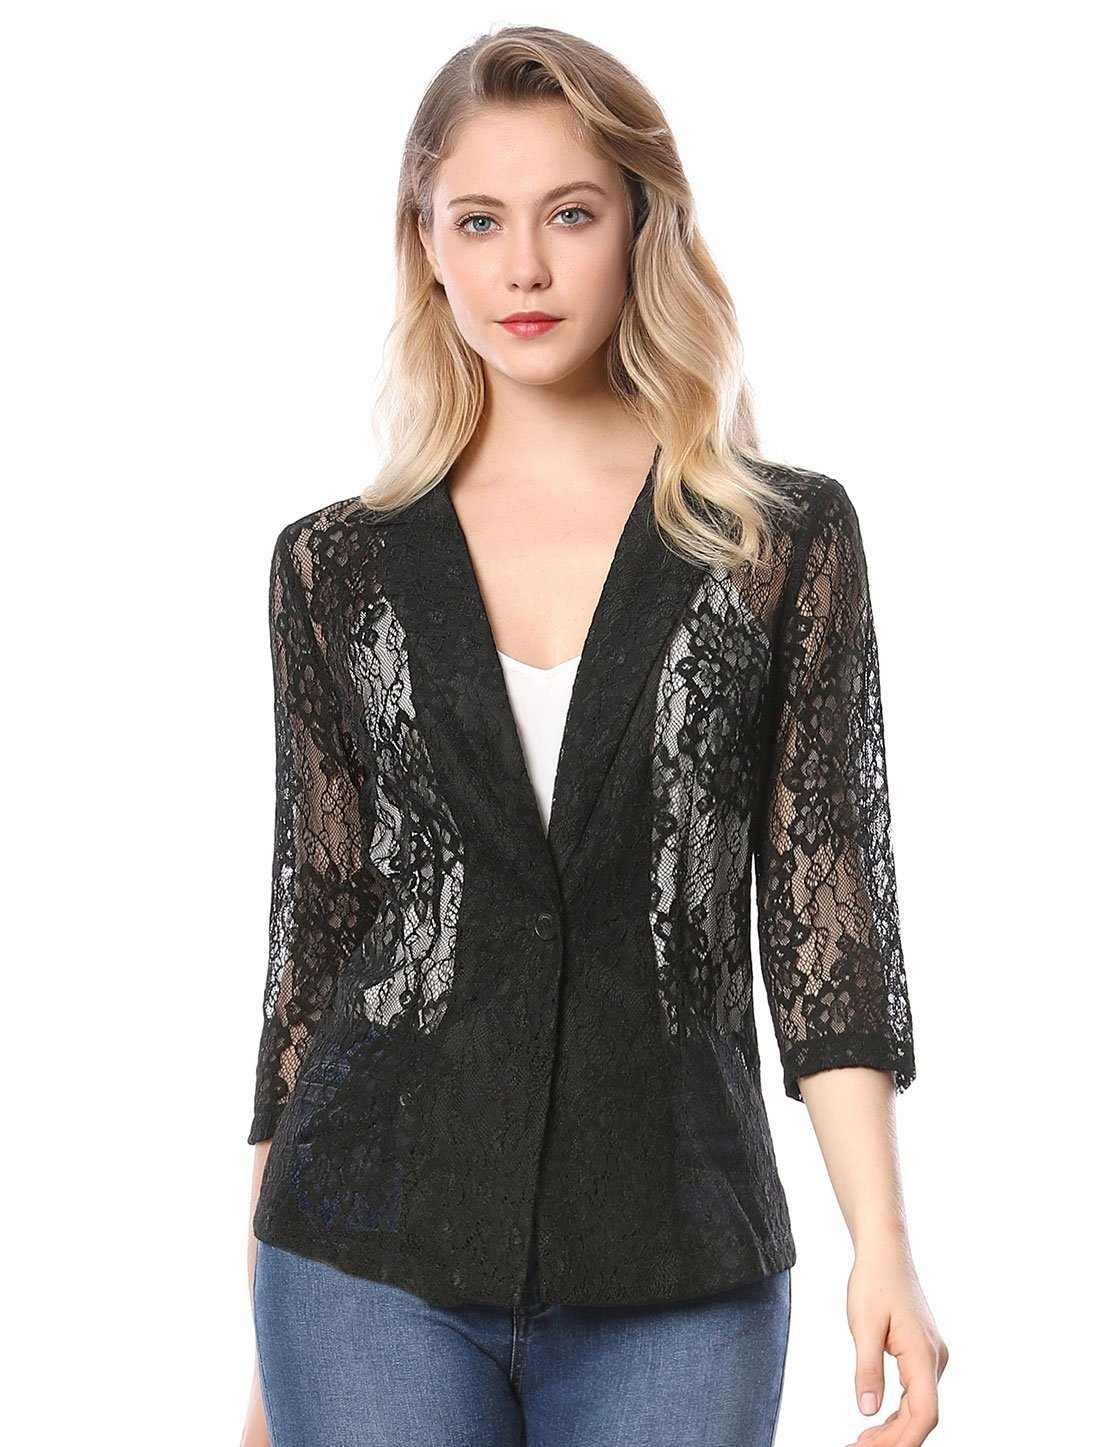 Allegra K Women's 3/4 Sleeves Notched Lapel One-Button Lace Blazer S Black